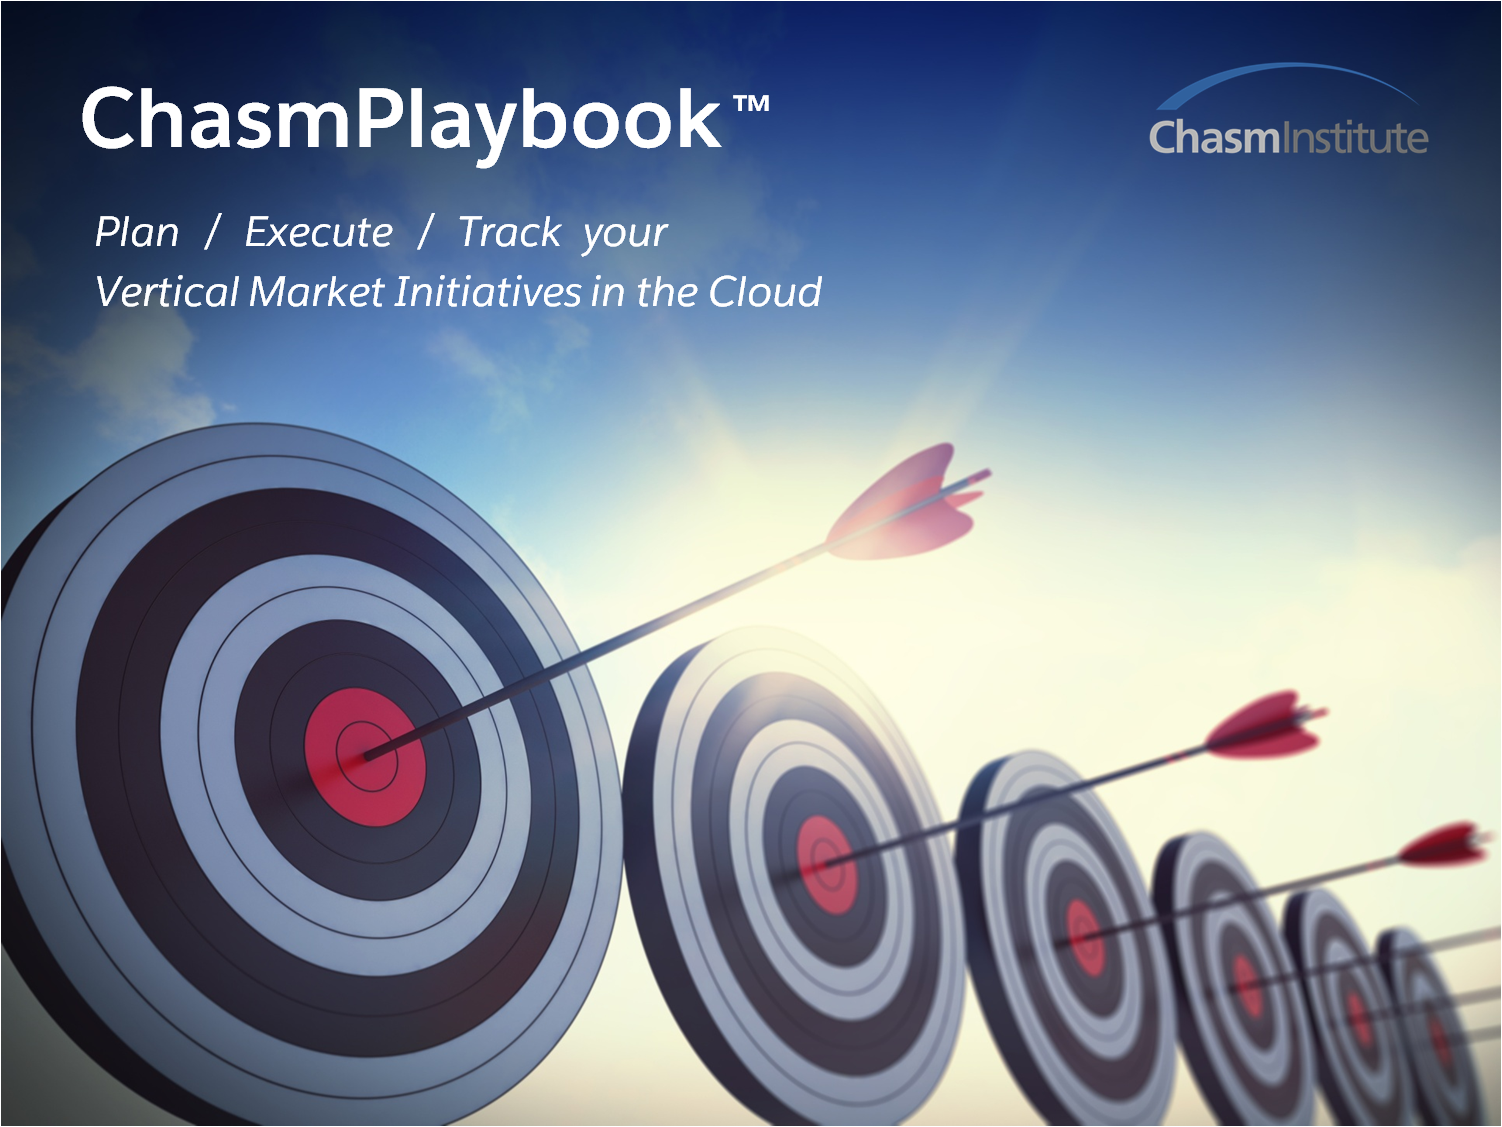 Chasm Institute LLC Announces Initial Release of ChasmPlaybook